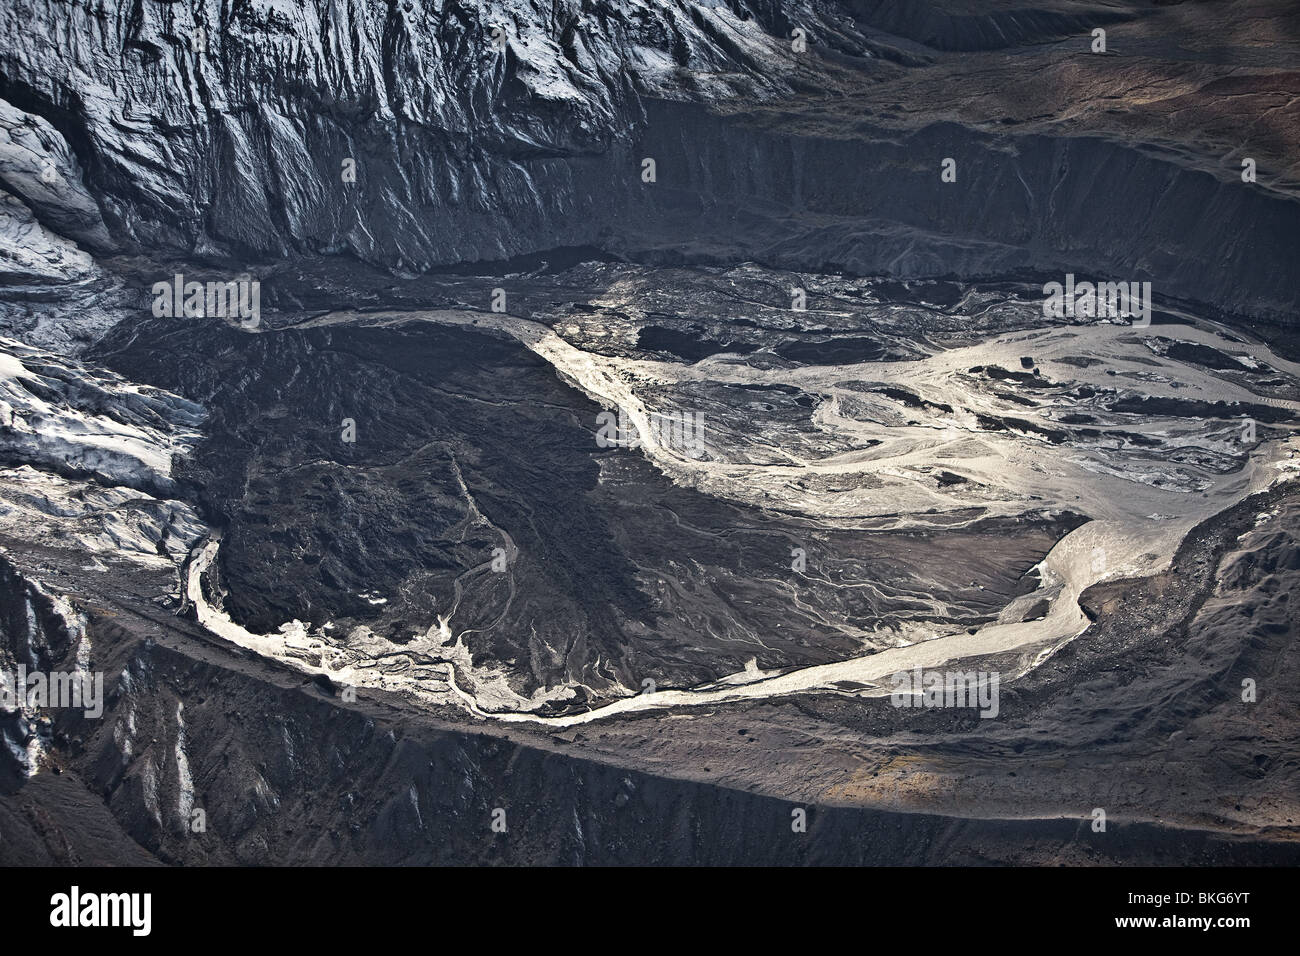 Gigjokull,-outlet glacier from Eyjafjallajokull.  Lagoon filled with mud and ash, Eyjafjallajokull Volcano Eruption, - Stock Image